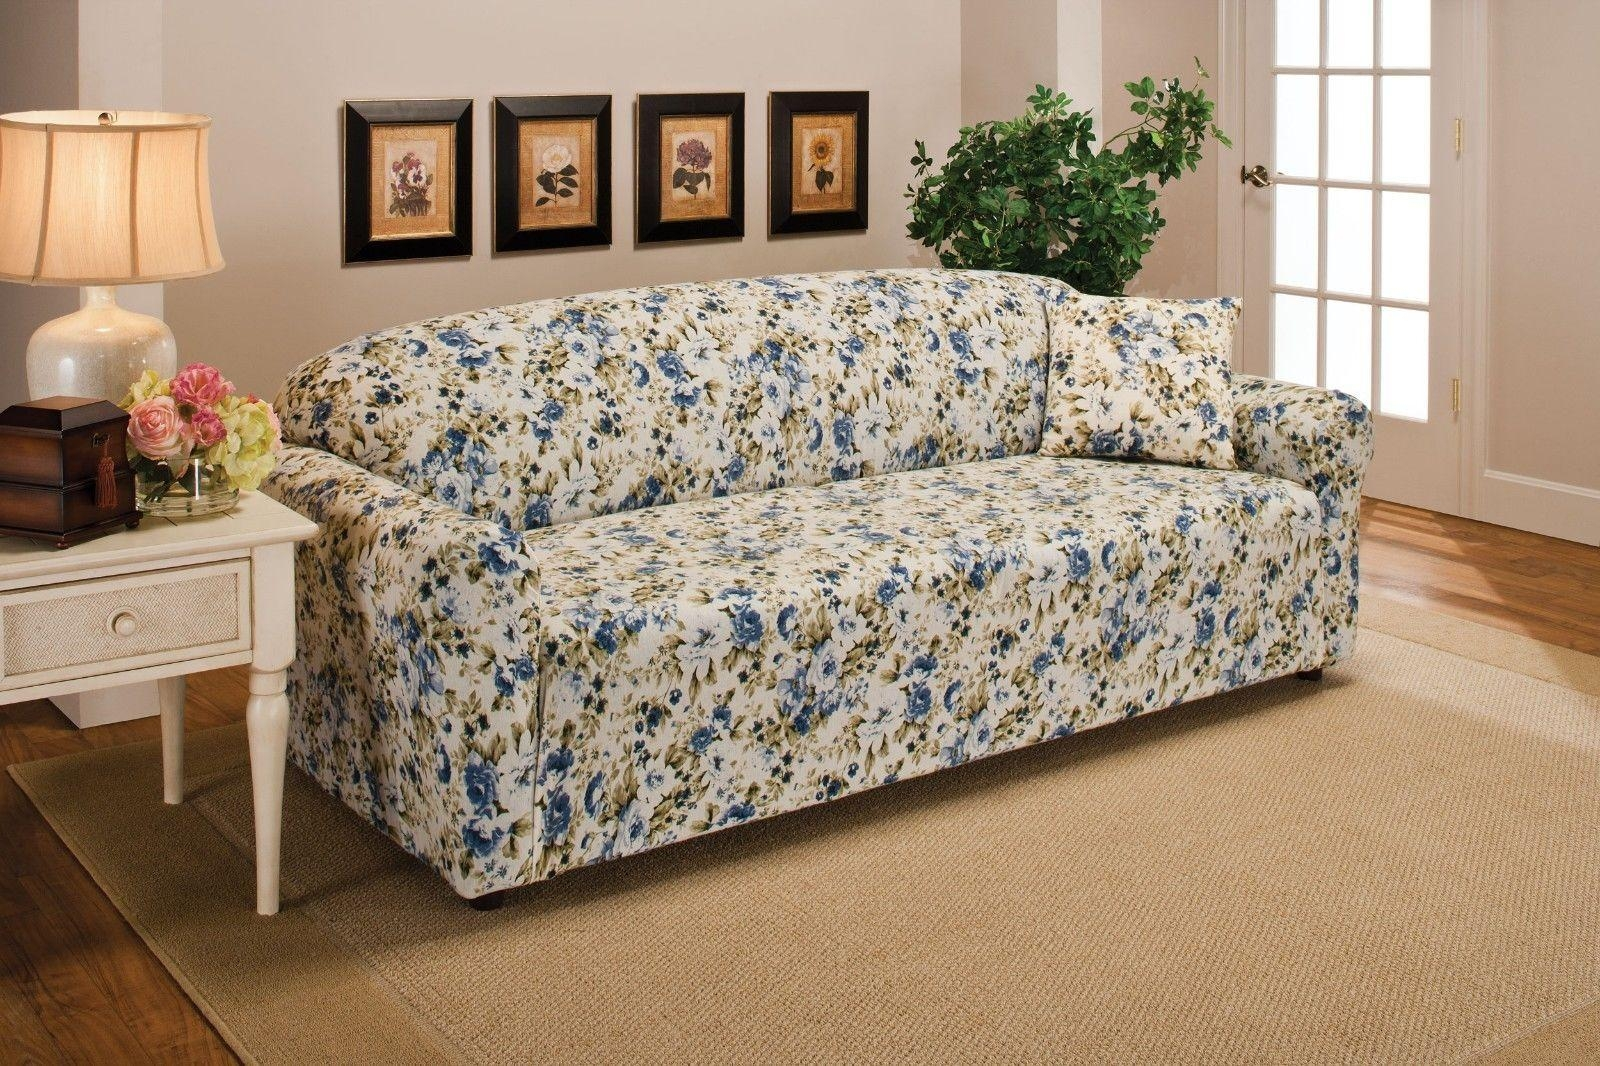 Blue Floral Flower Jersey Sofa Stretch Slipcover Couch Cover Chair Intended For Floral Sofa Slipcovers (Image 1 of 20)